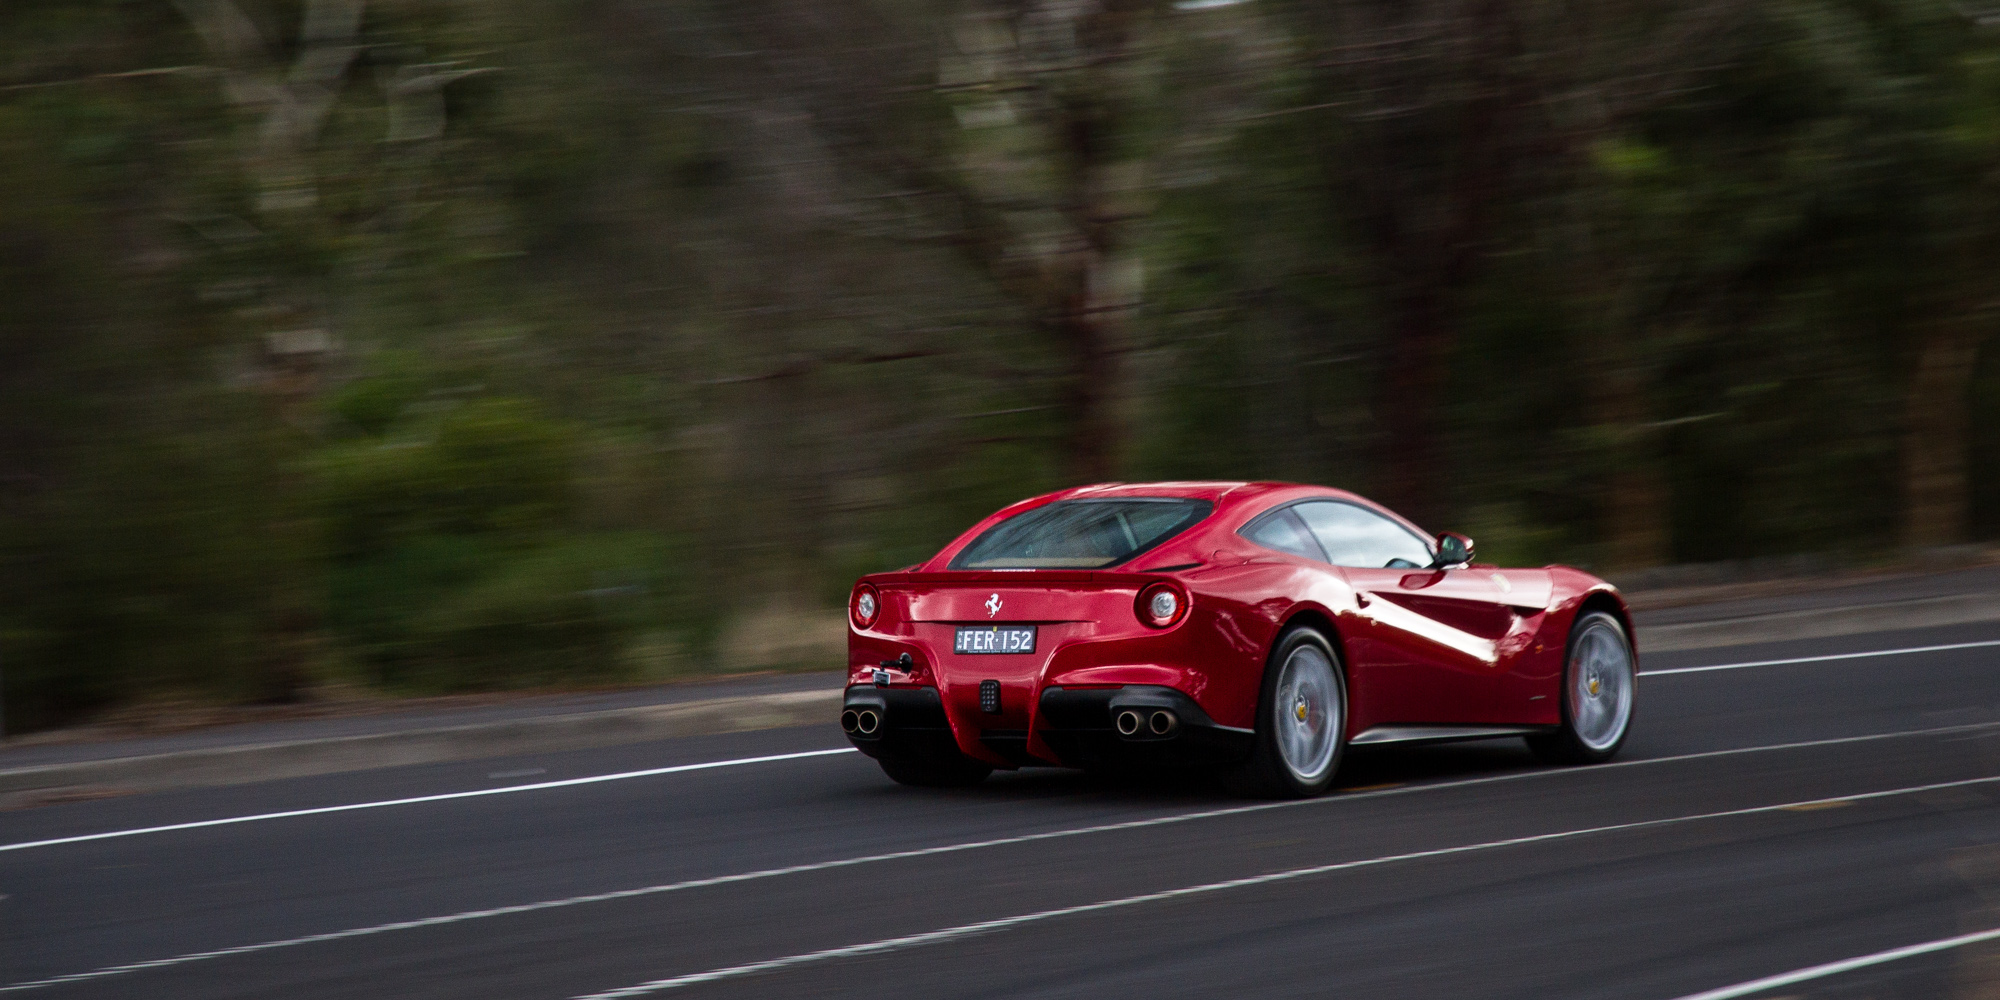 Subaru Models 2015 >> 2015 Ferrari F12 Berlinetta Review - photos | CarAdvice